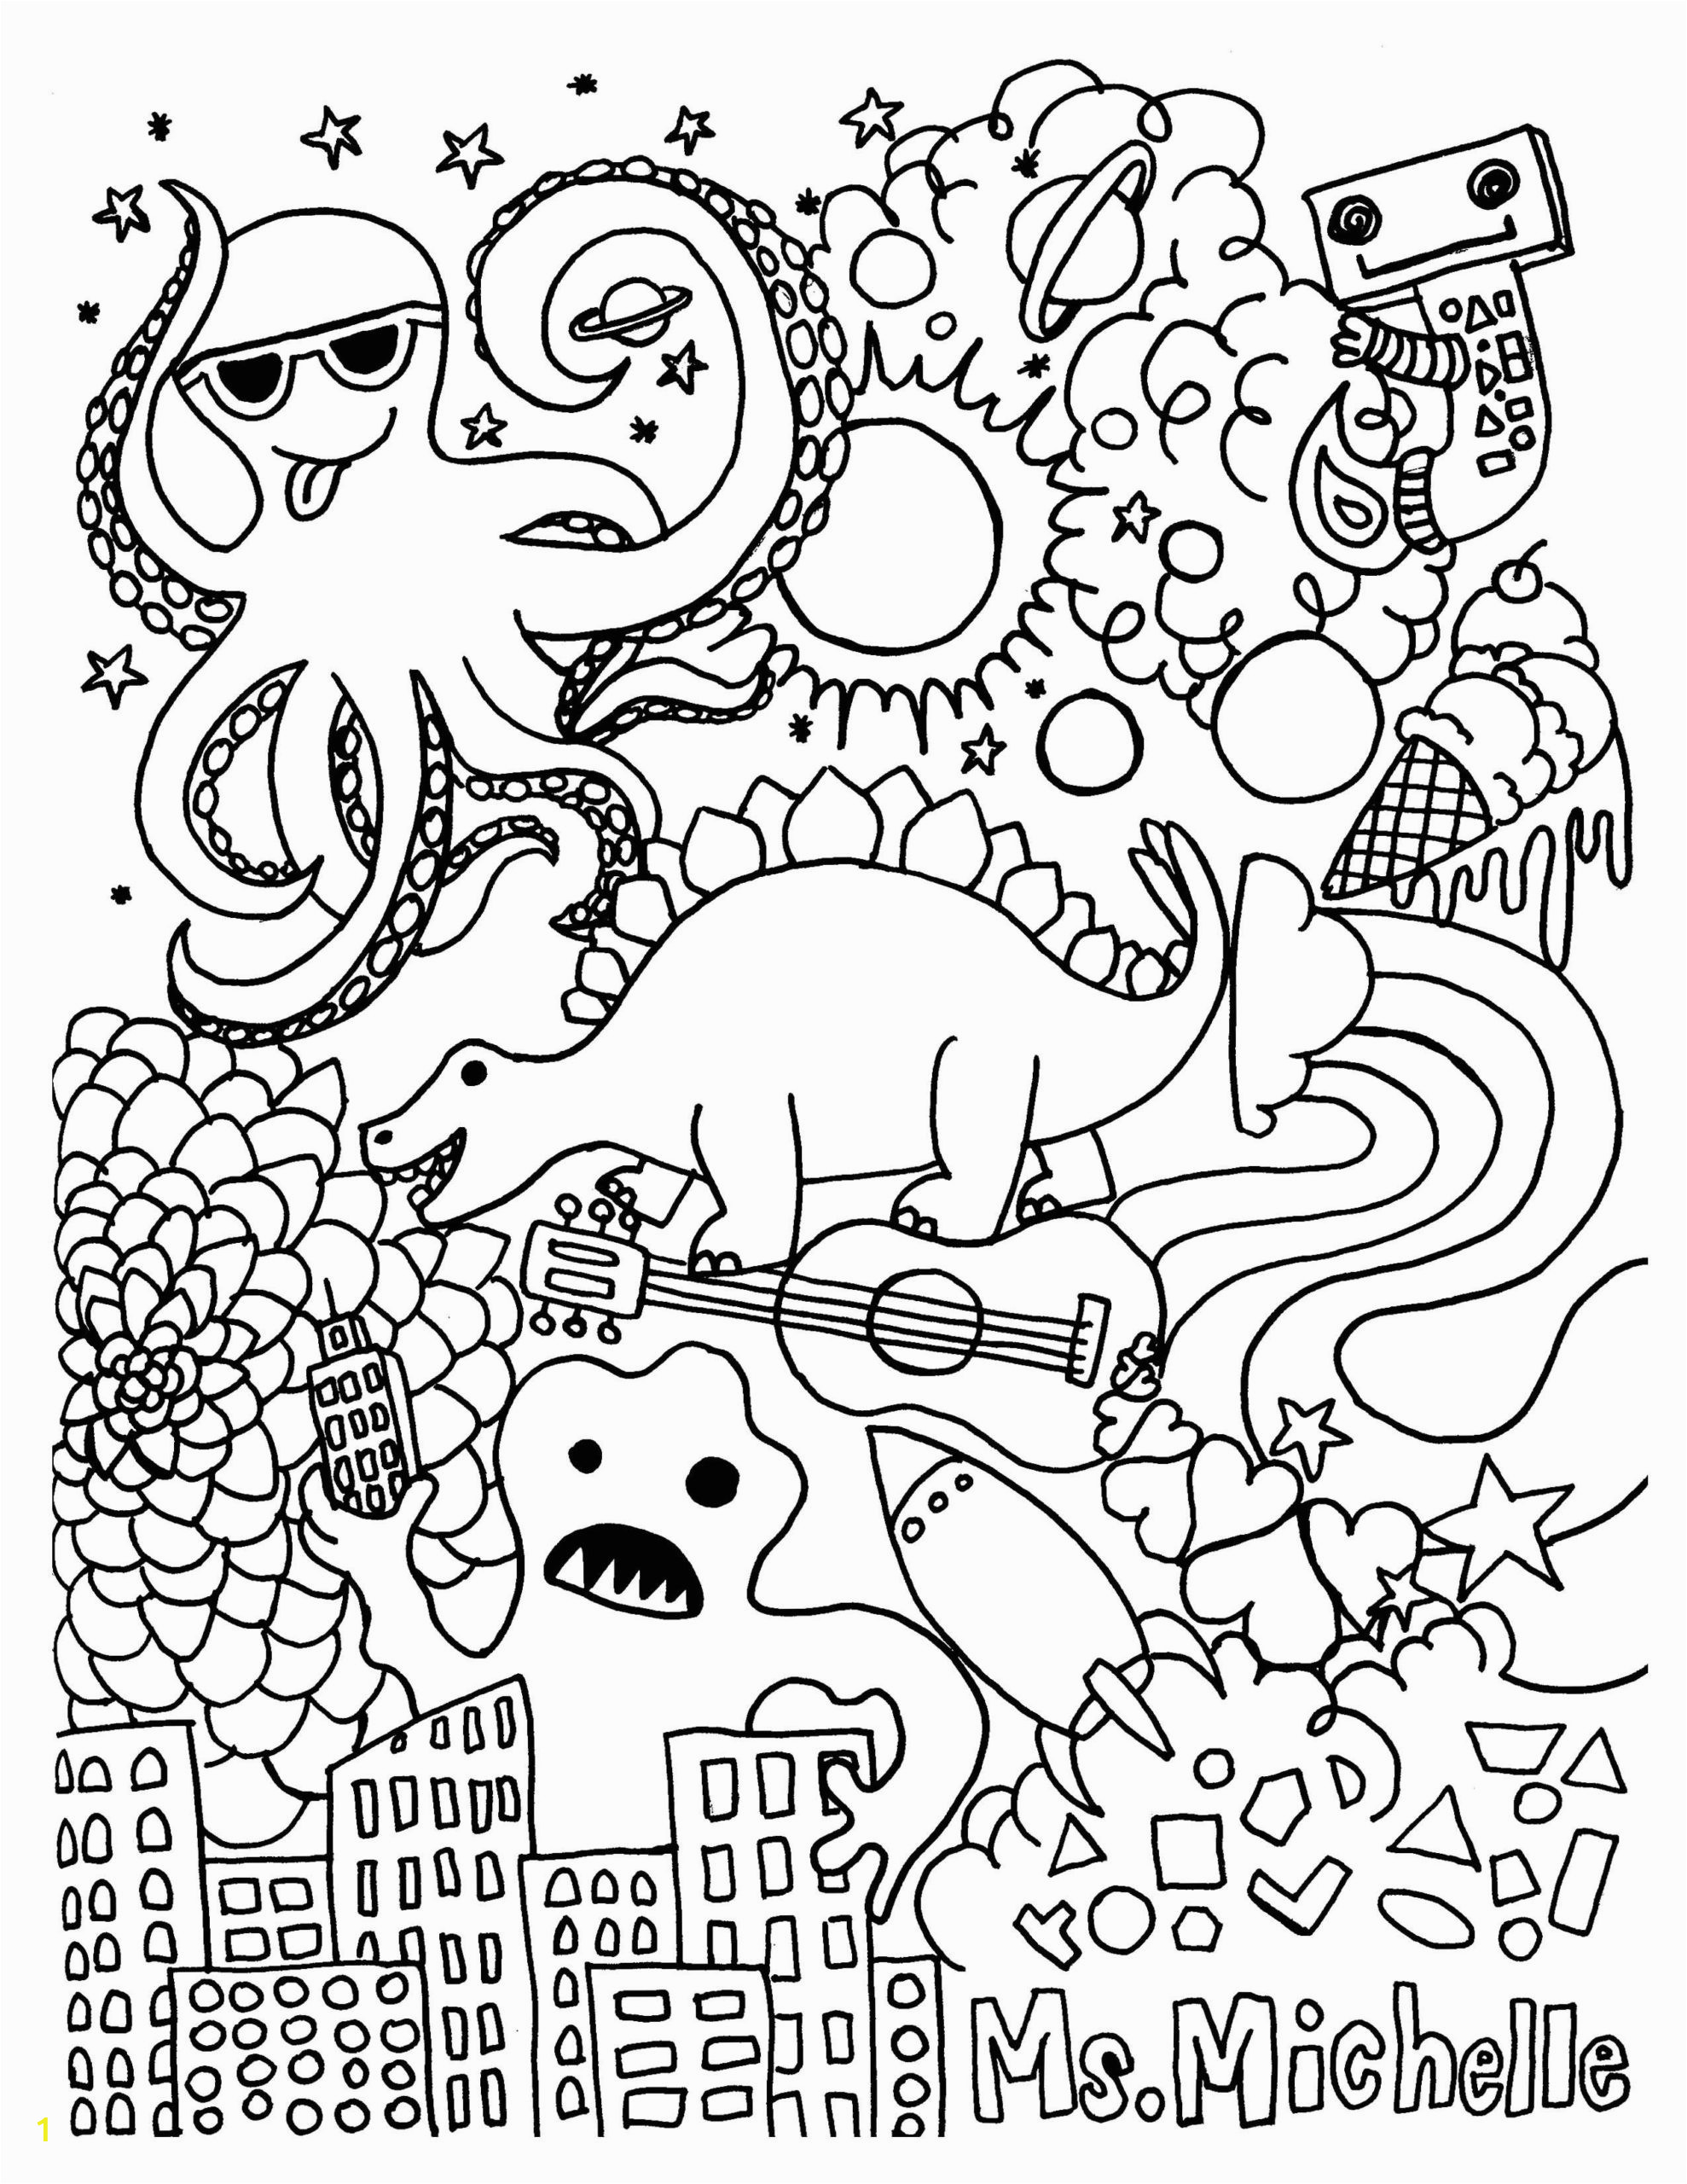 love you adult coloring pages celtic mandala giraffe book detailed for adults calming sheets palace page mindfulness colouring children biology christmas tree igloo halloween cat magic